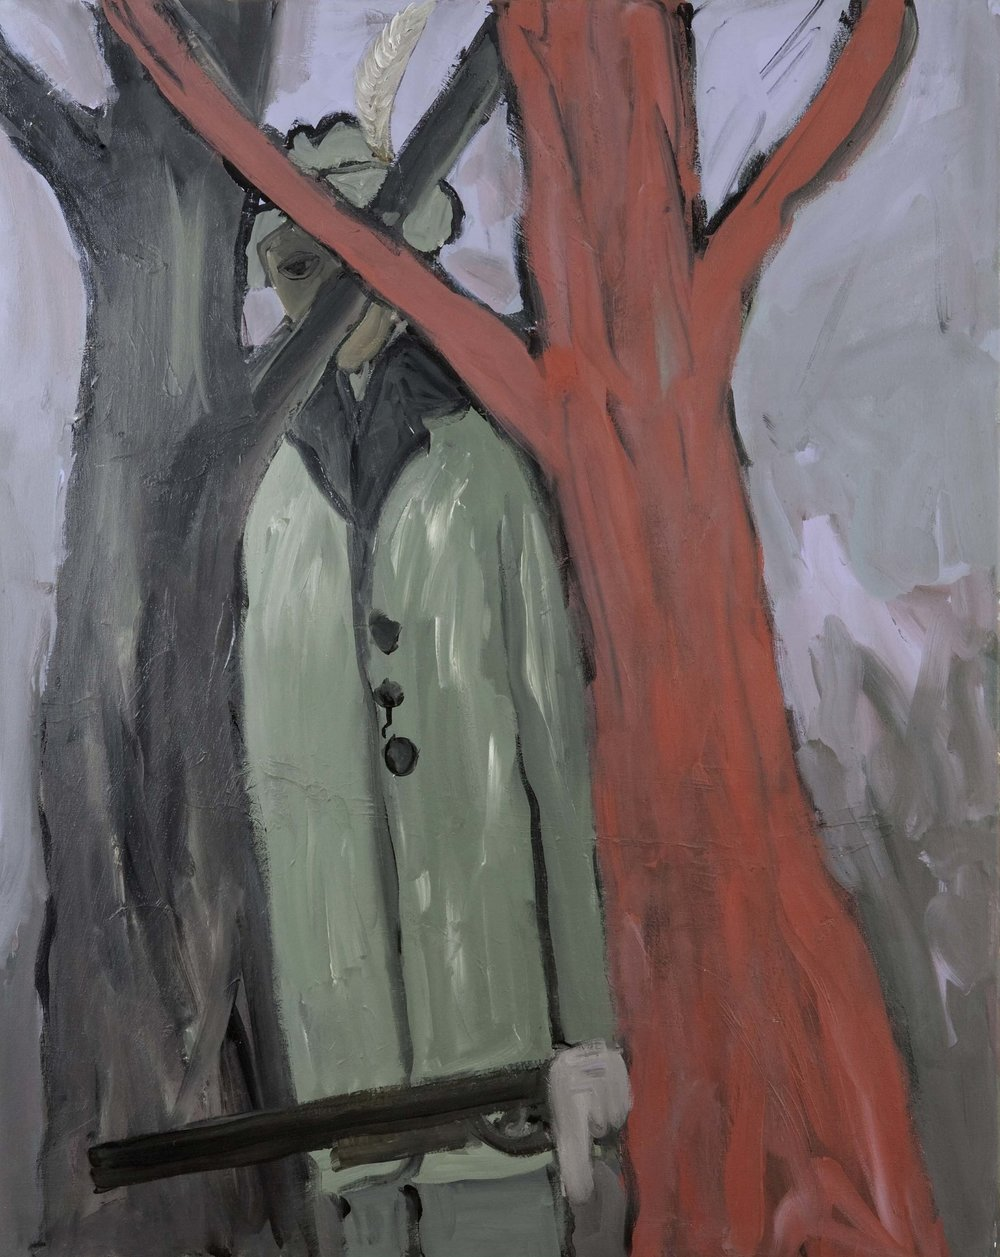 Meneer Hubertus   1993  acrylic on canvas  80 x 100 cm